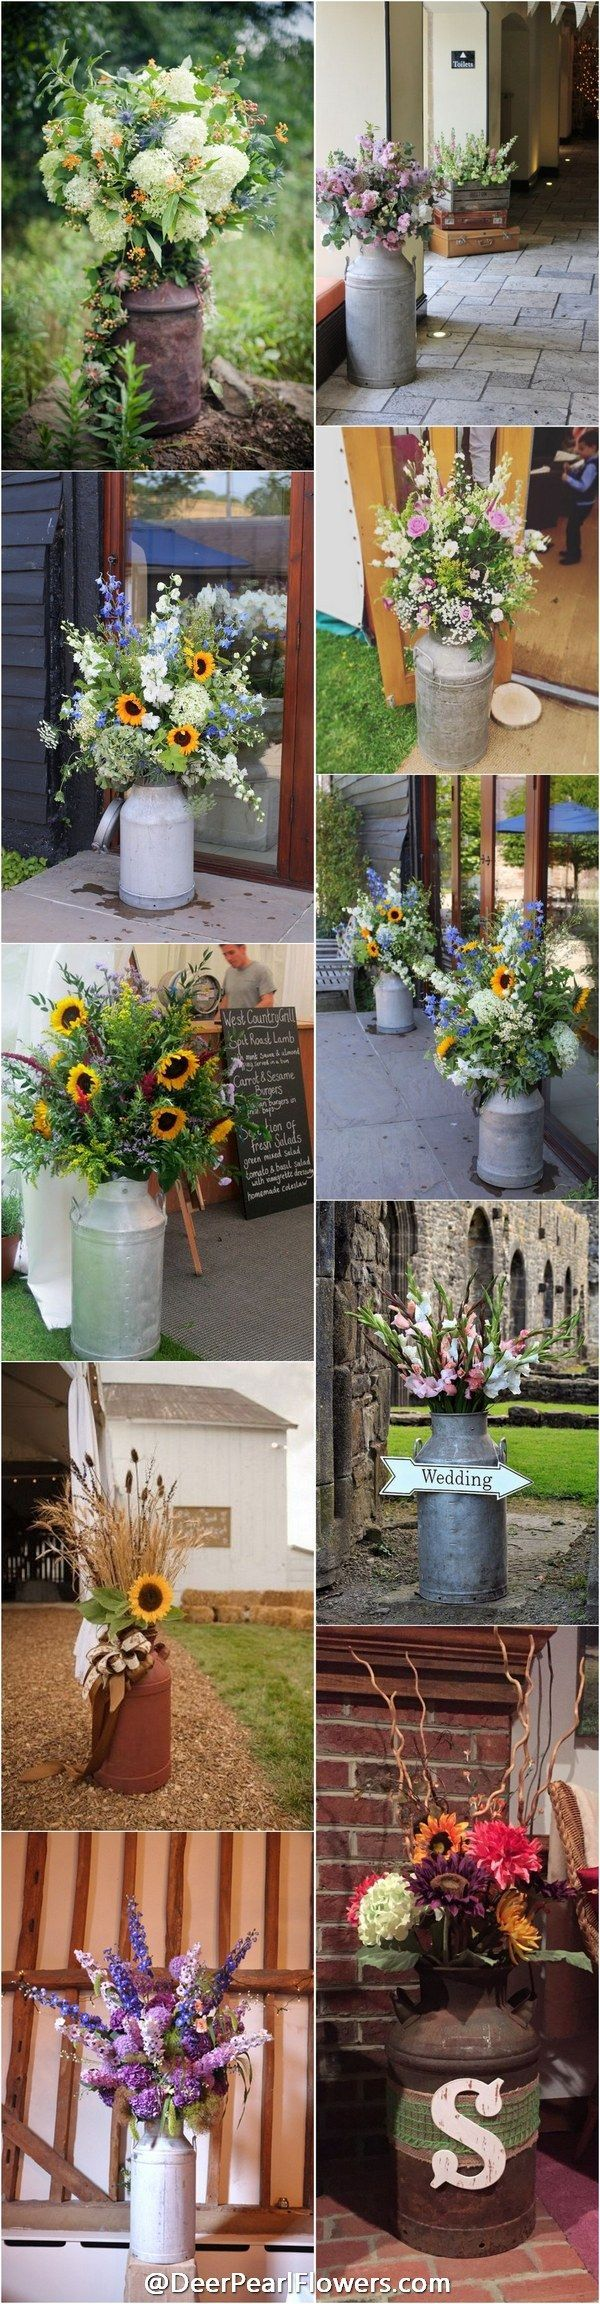 rustic country milk churn wedding decor ideas / http://www.deerpearlflowers.com/rustic-country-milk-jug-wedding-ideas/